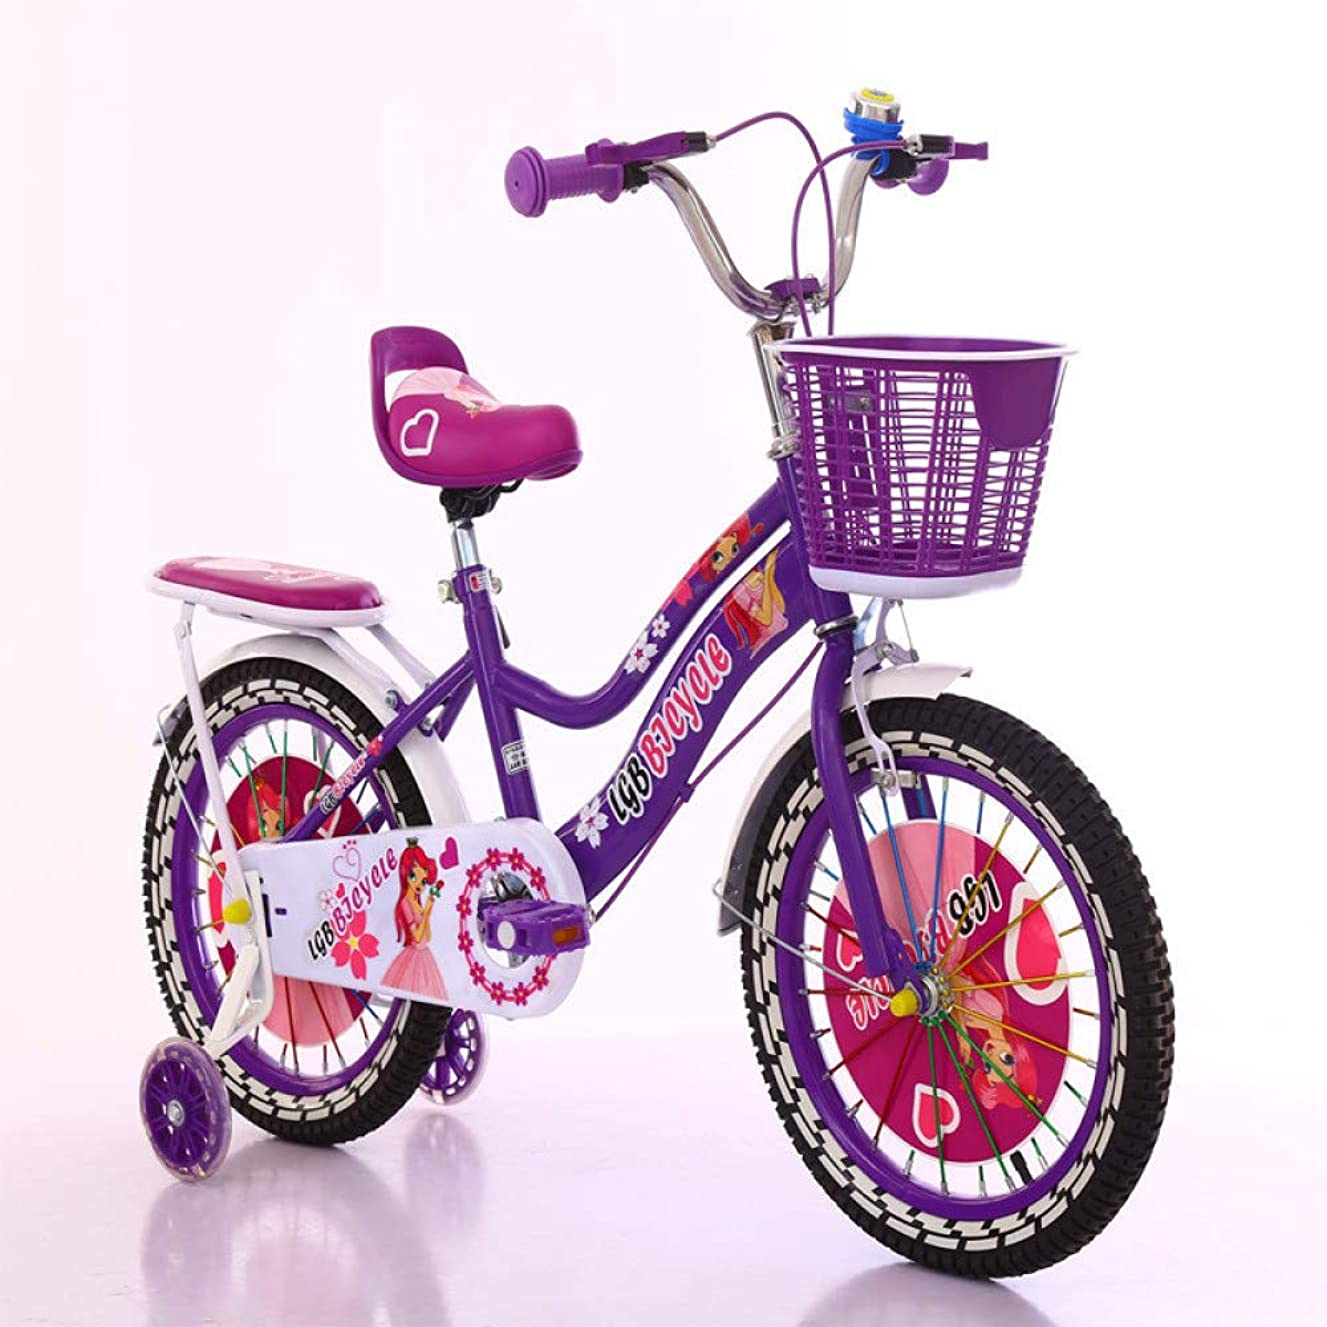 WY-Tong Bikes for Kids Kids Bike 2-6-Year-Old Baby Stroller Male and Female General Pedal Bike with Basket + Stabilizer